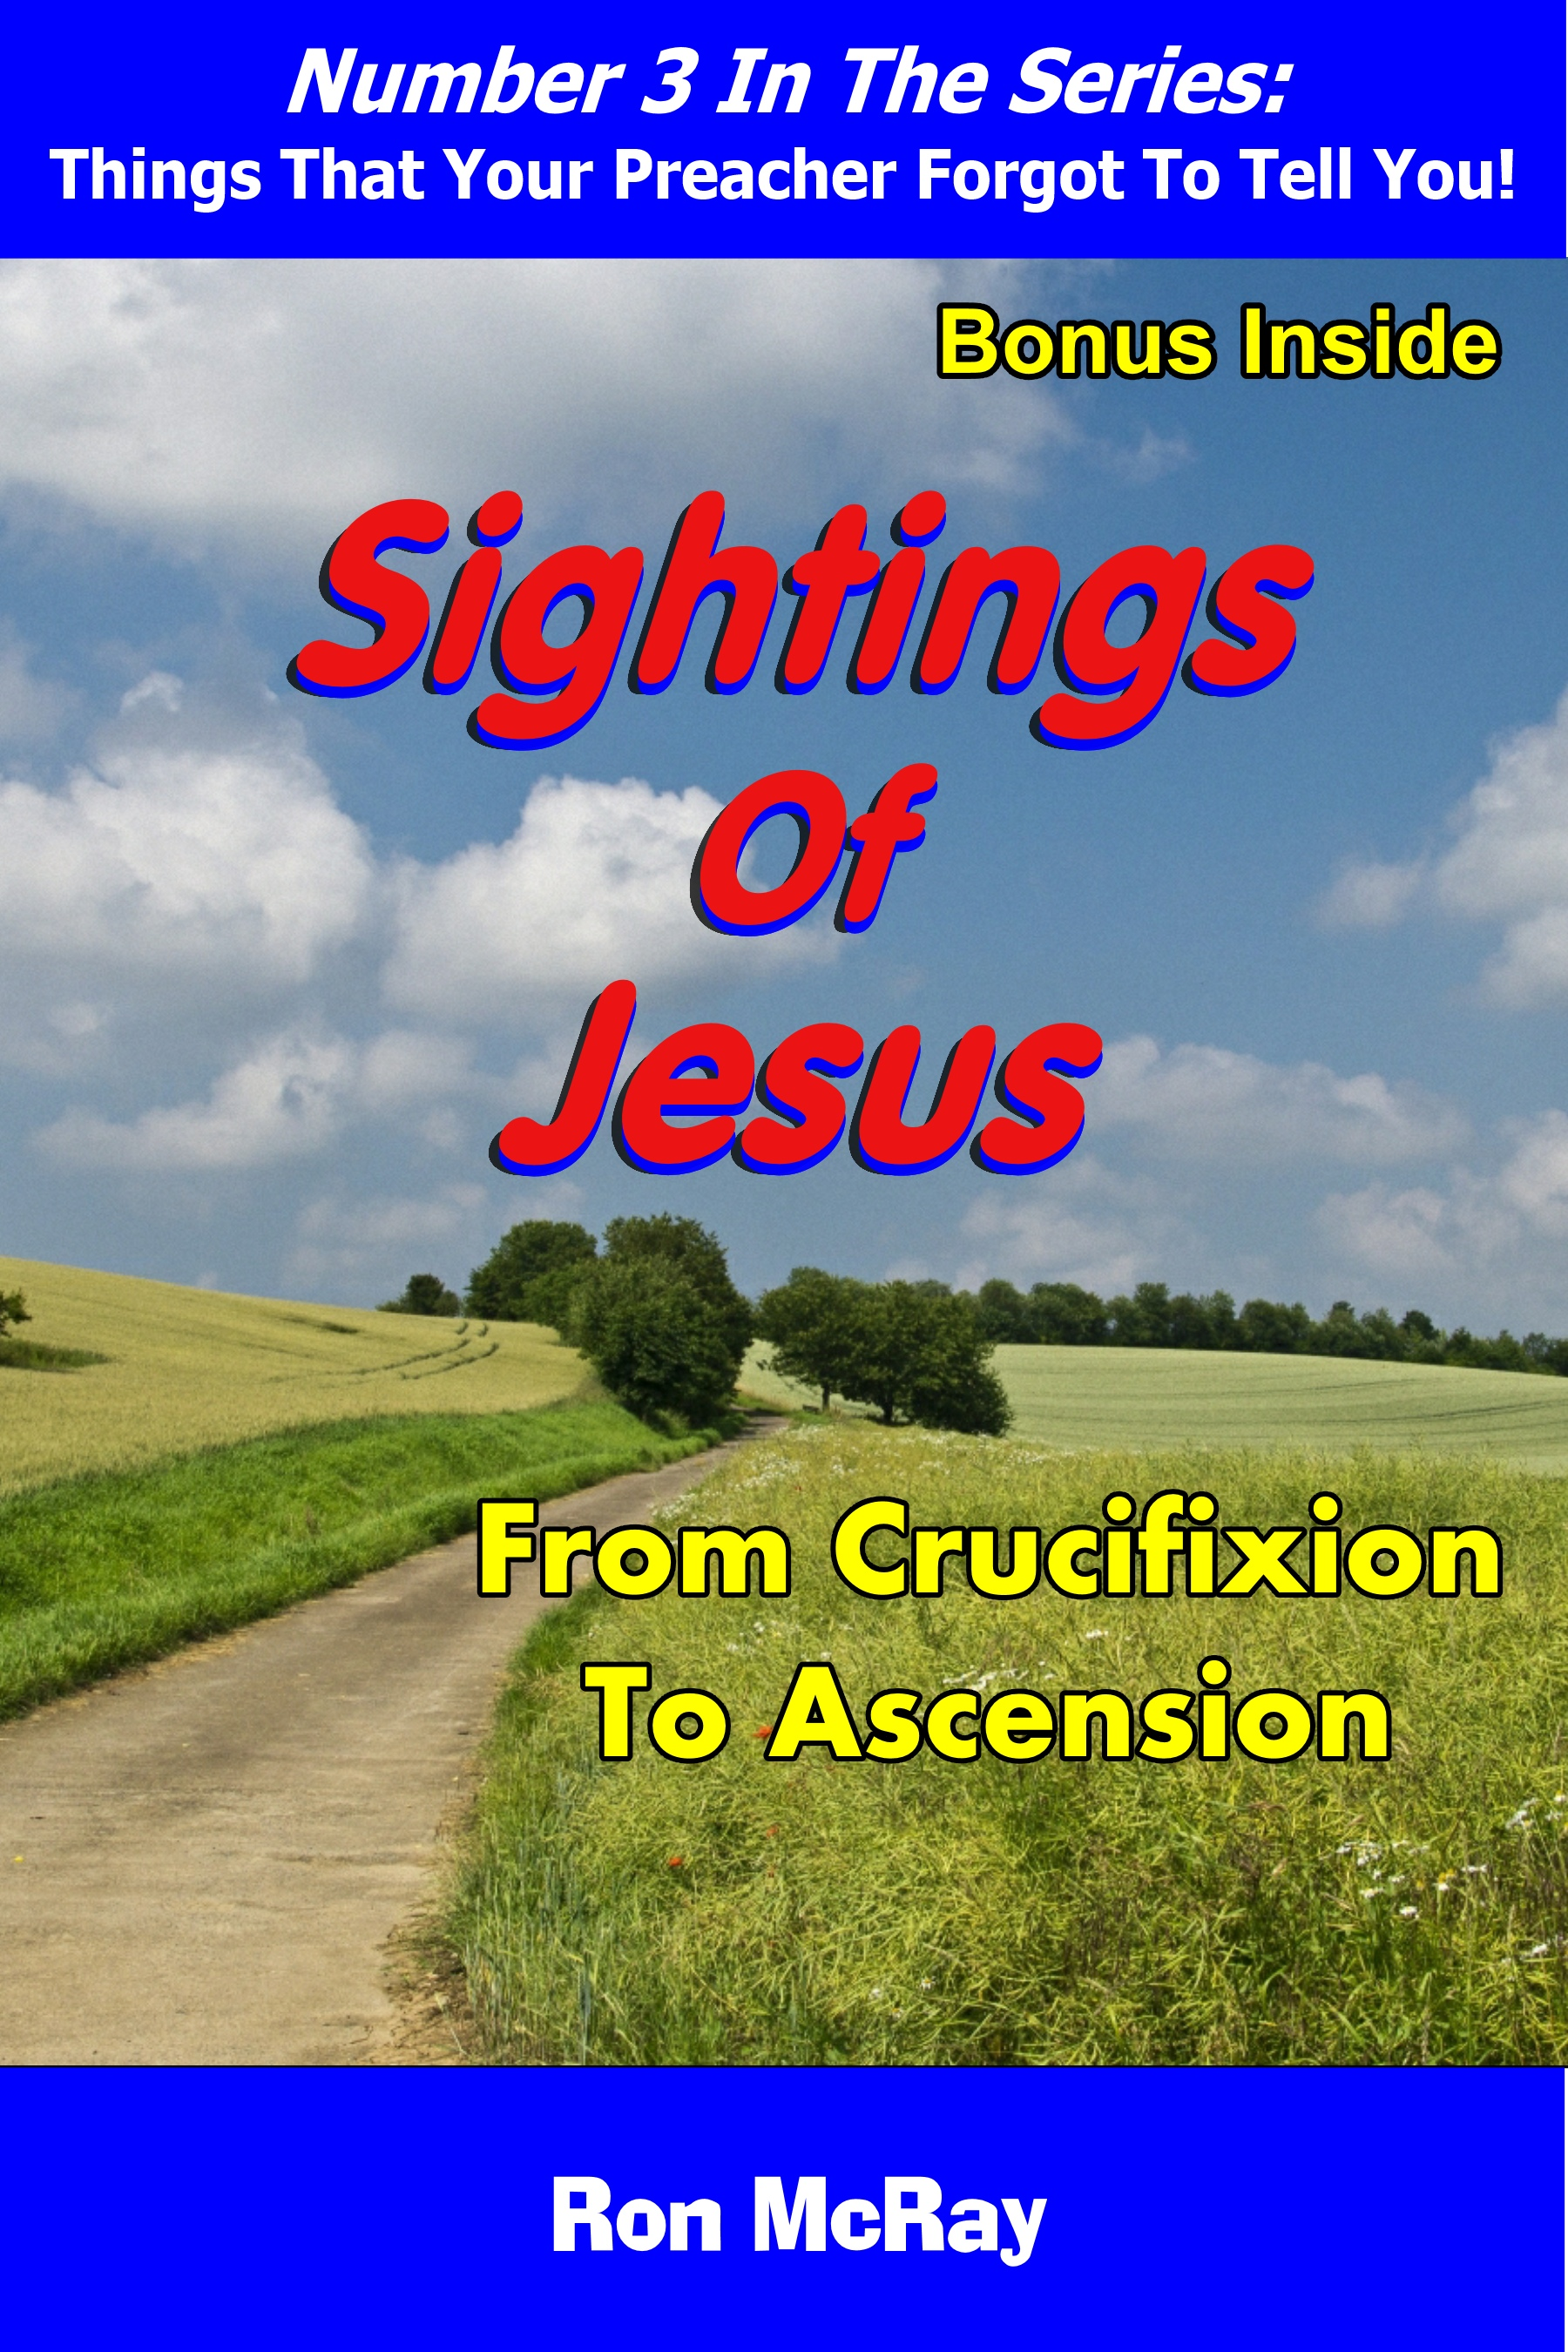 Sightings Of Jesus: From Crucifixion To Ascension